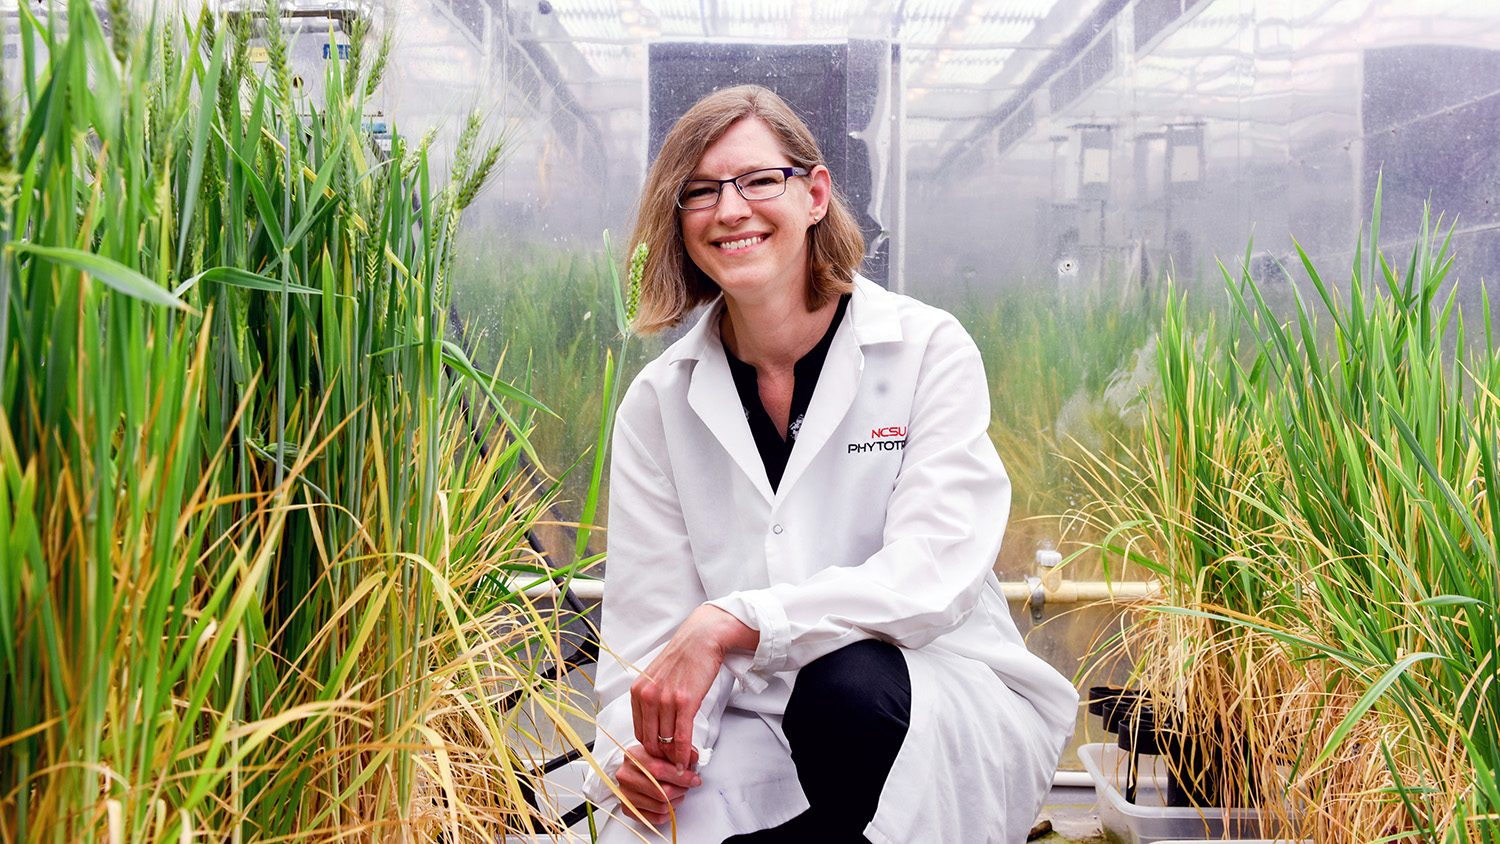 CALS scientist Amy Grunden crouched in front of wheat in a greenhouse